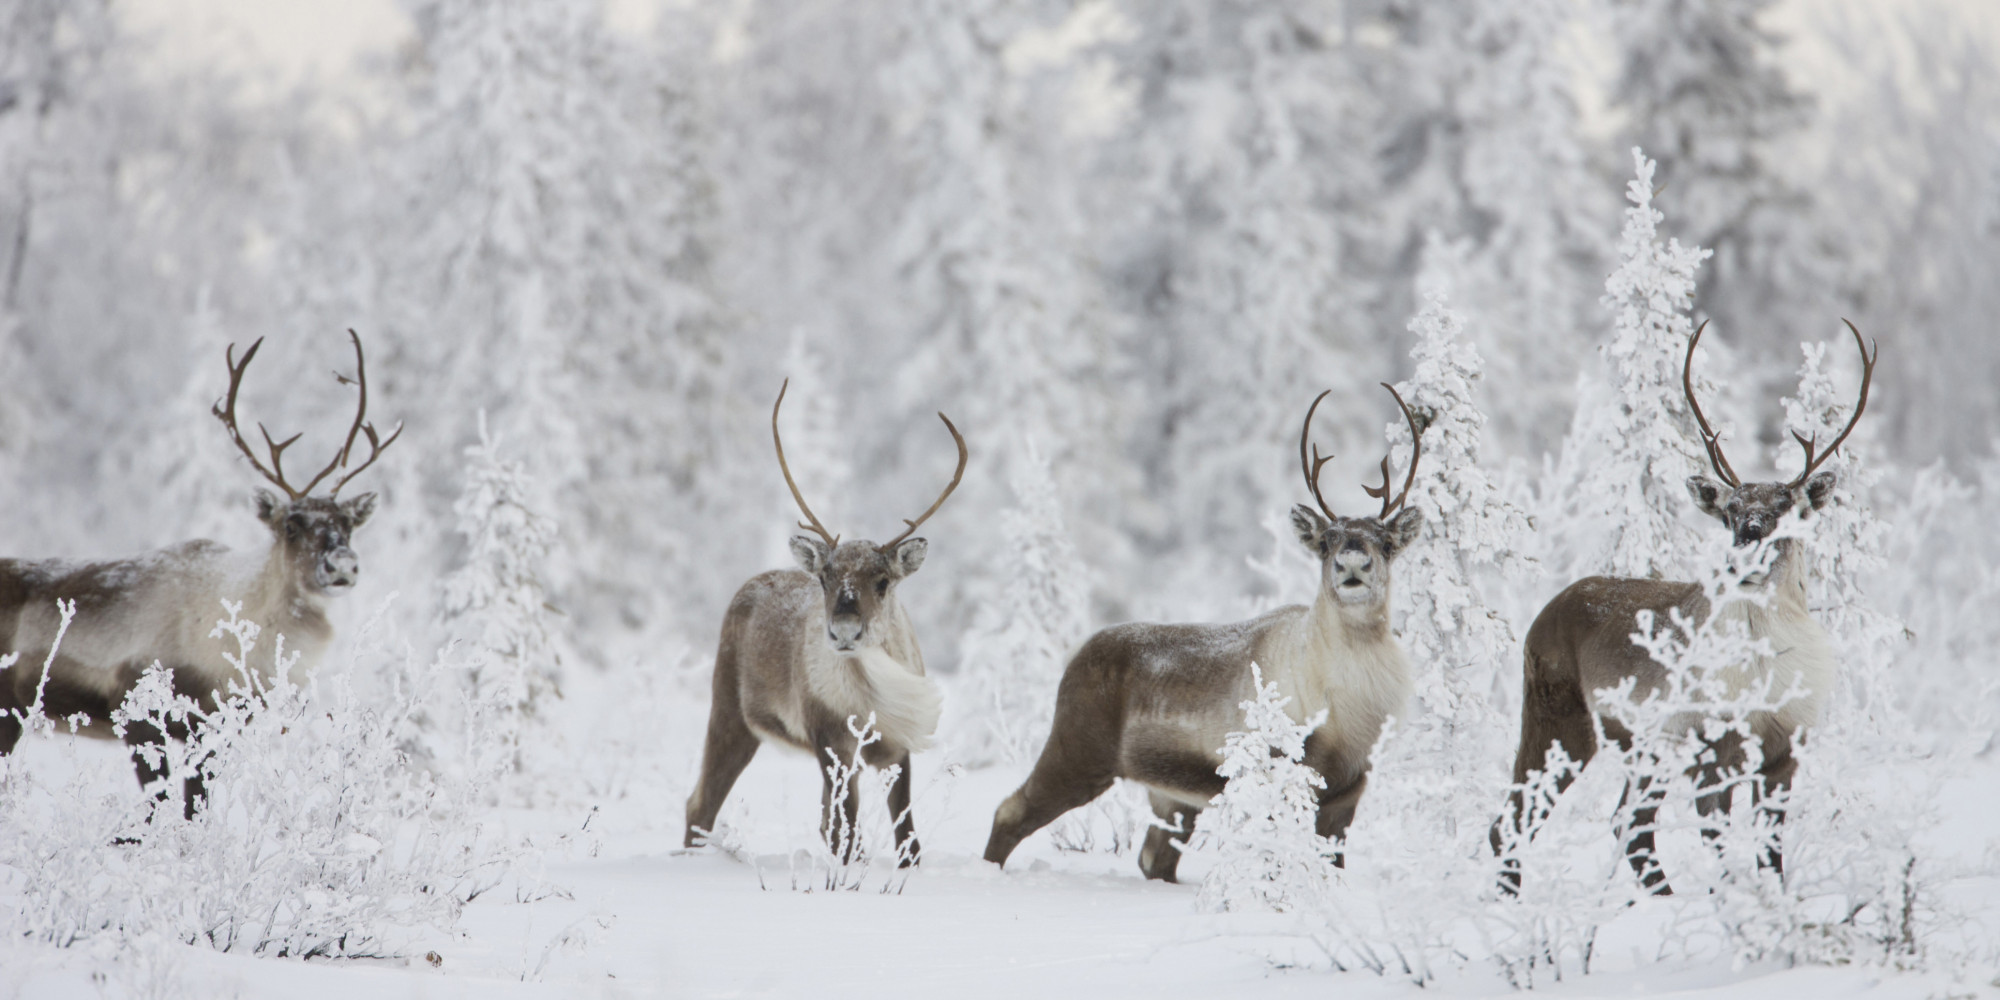 Caribou Continue To Be At Risk In Canada, Report Says